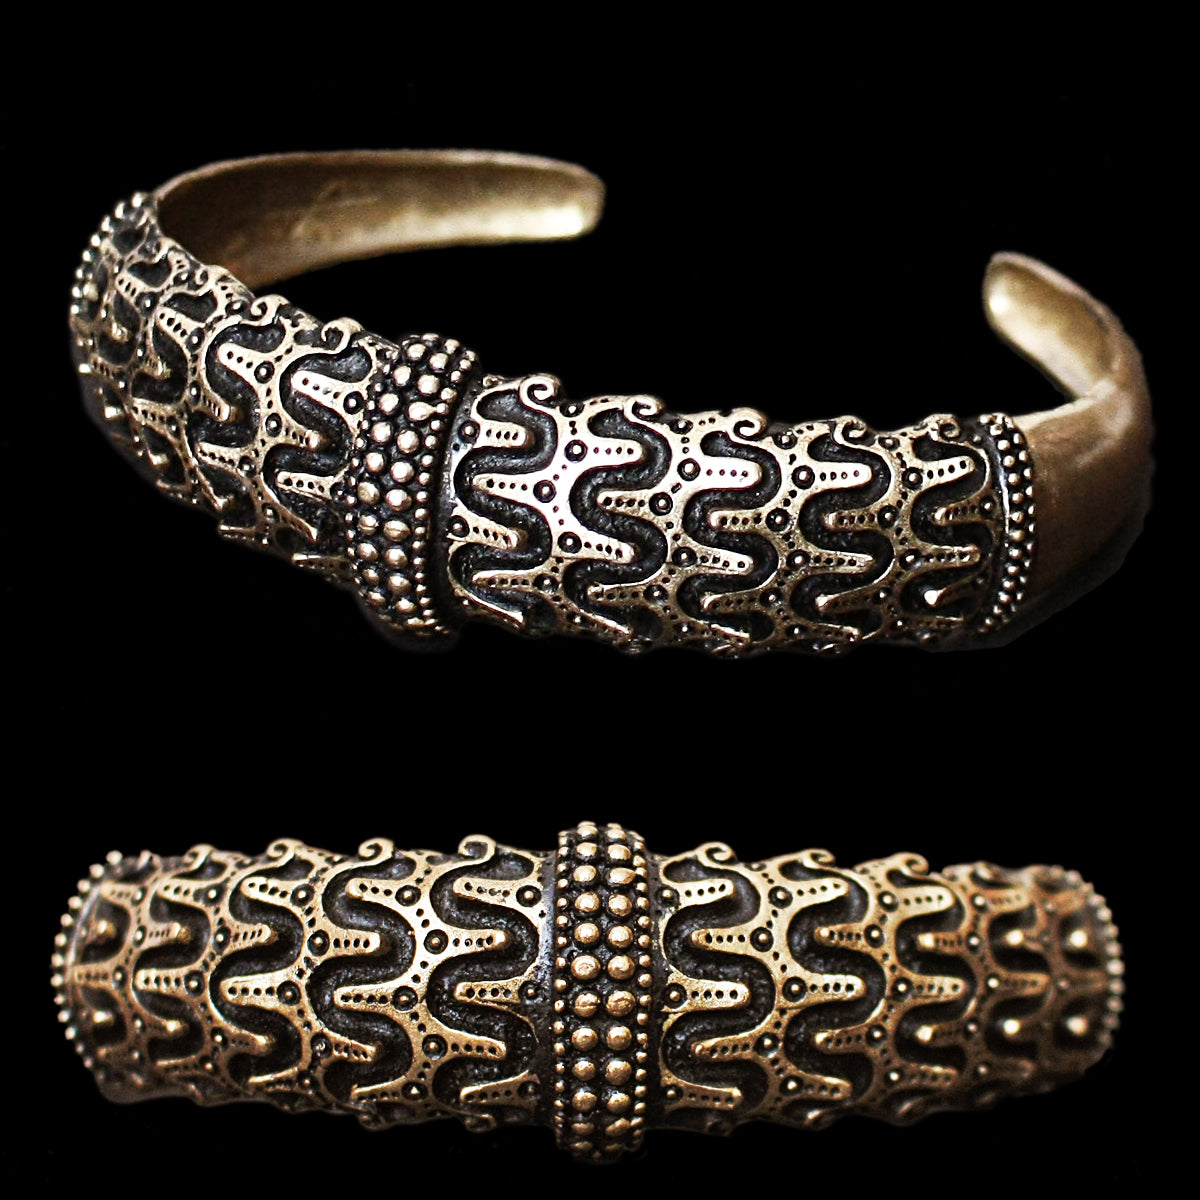 Bronze Replica Viking Arm Ring from Falster - Viking Jewelry